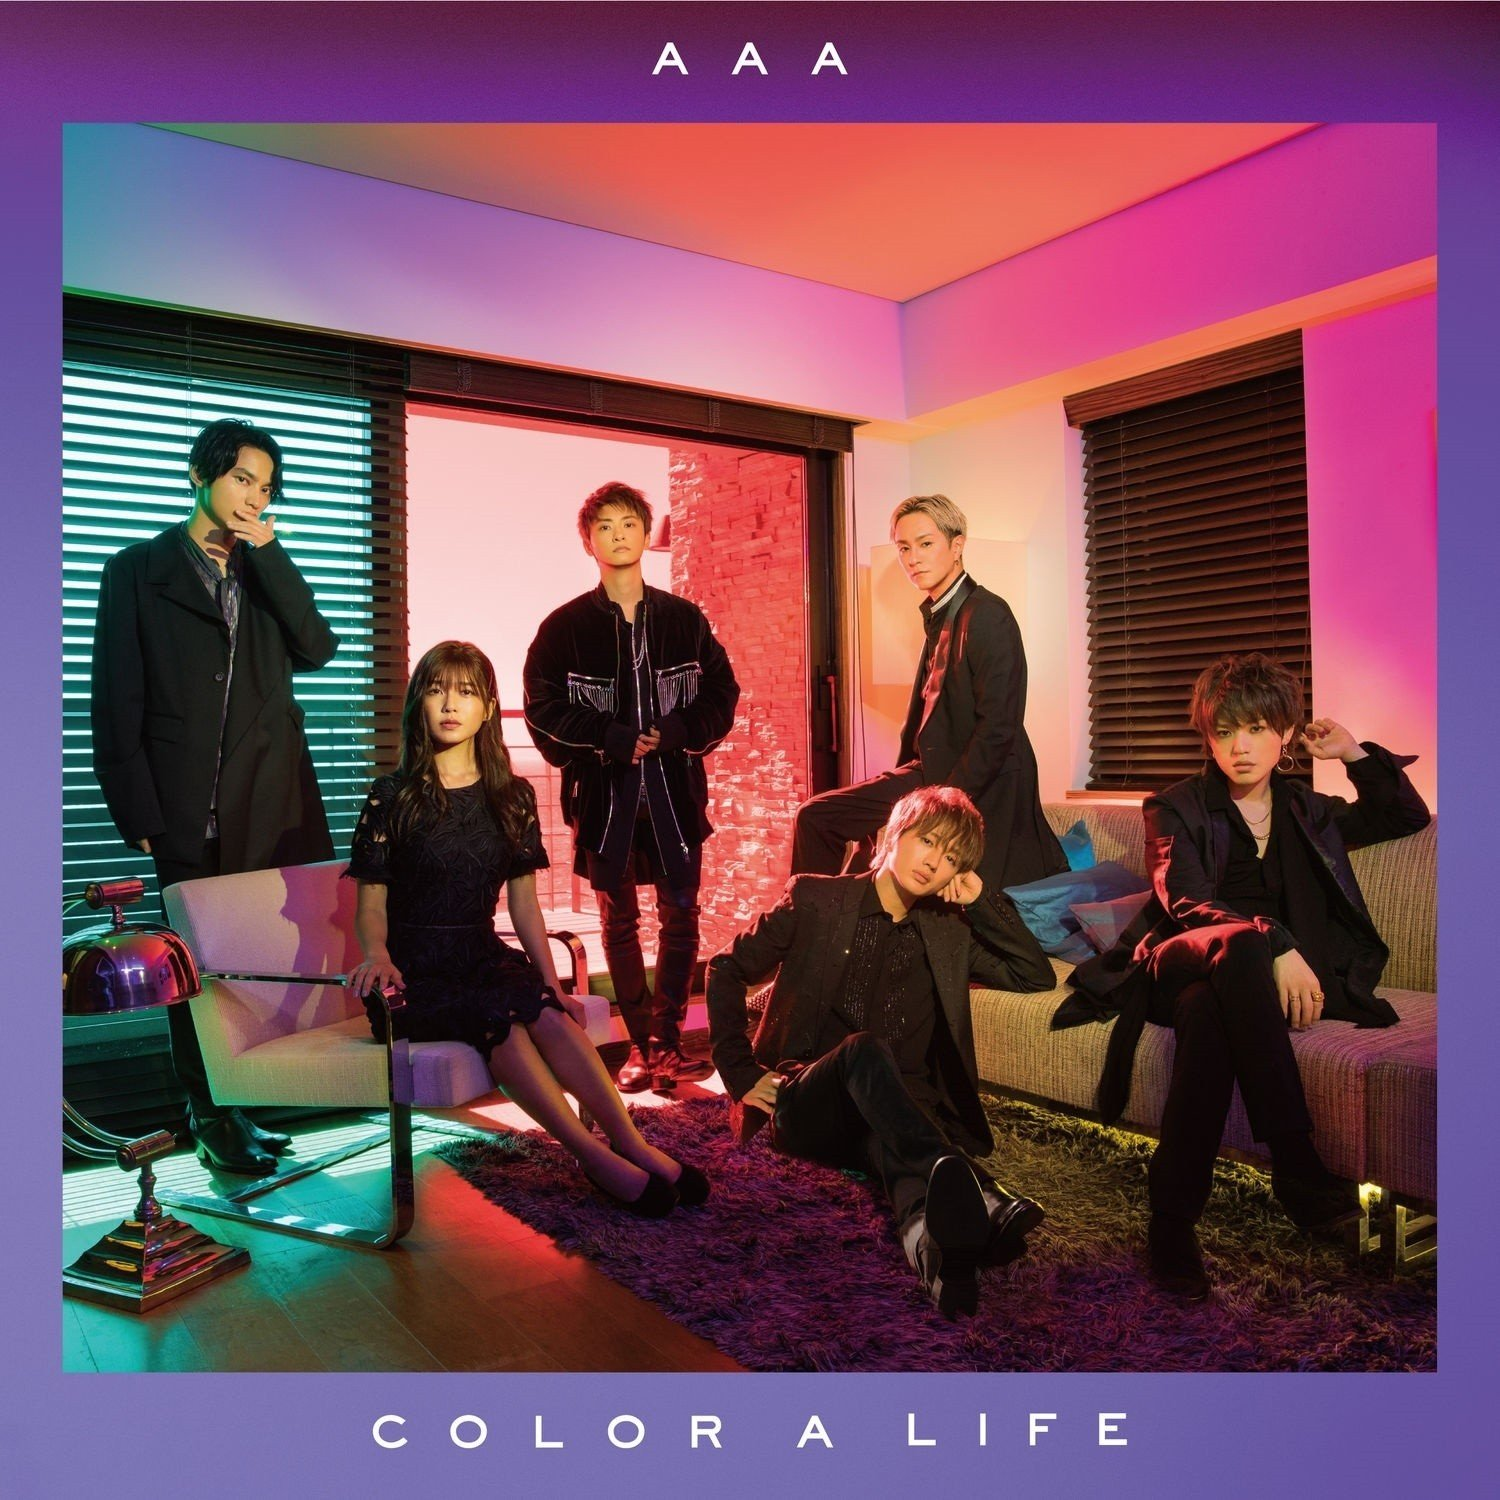 [Album] AAA – COLOR A LIFE [FLAC / 24bit Lossless / WEB] [2018.08.22]